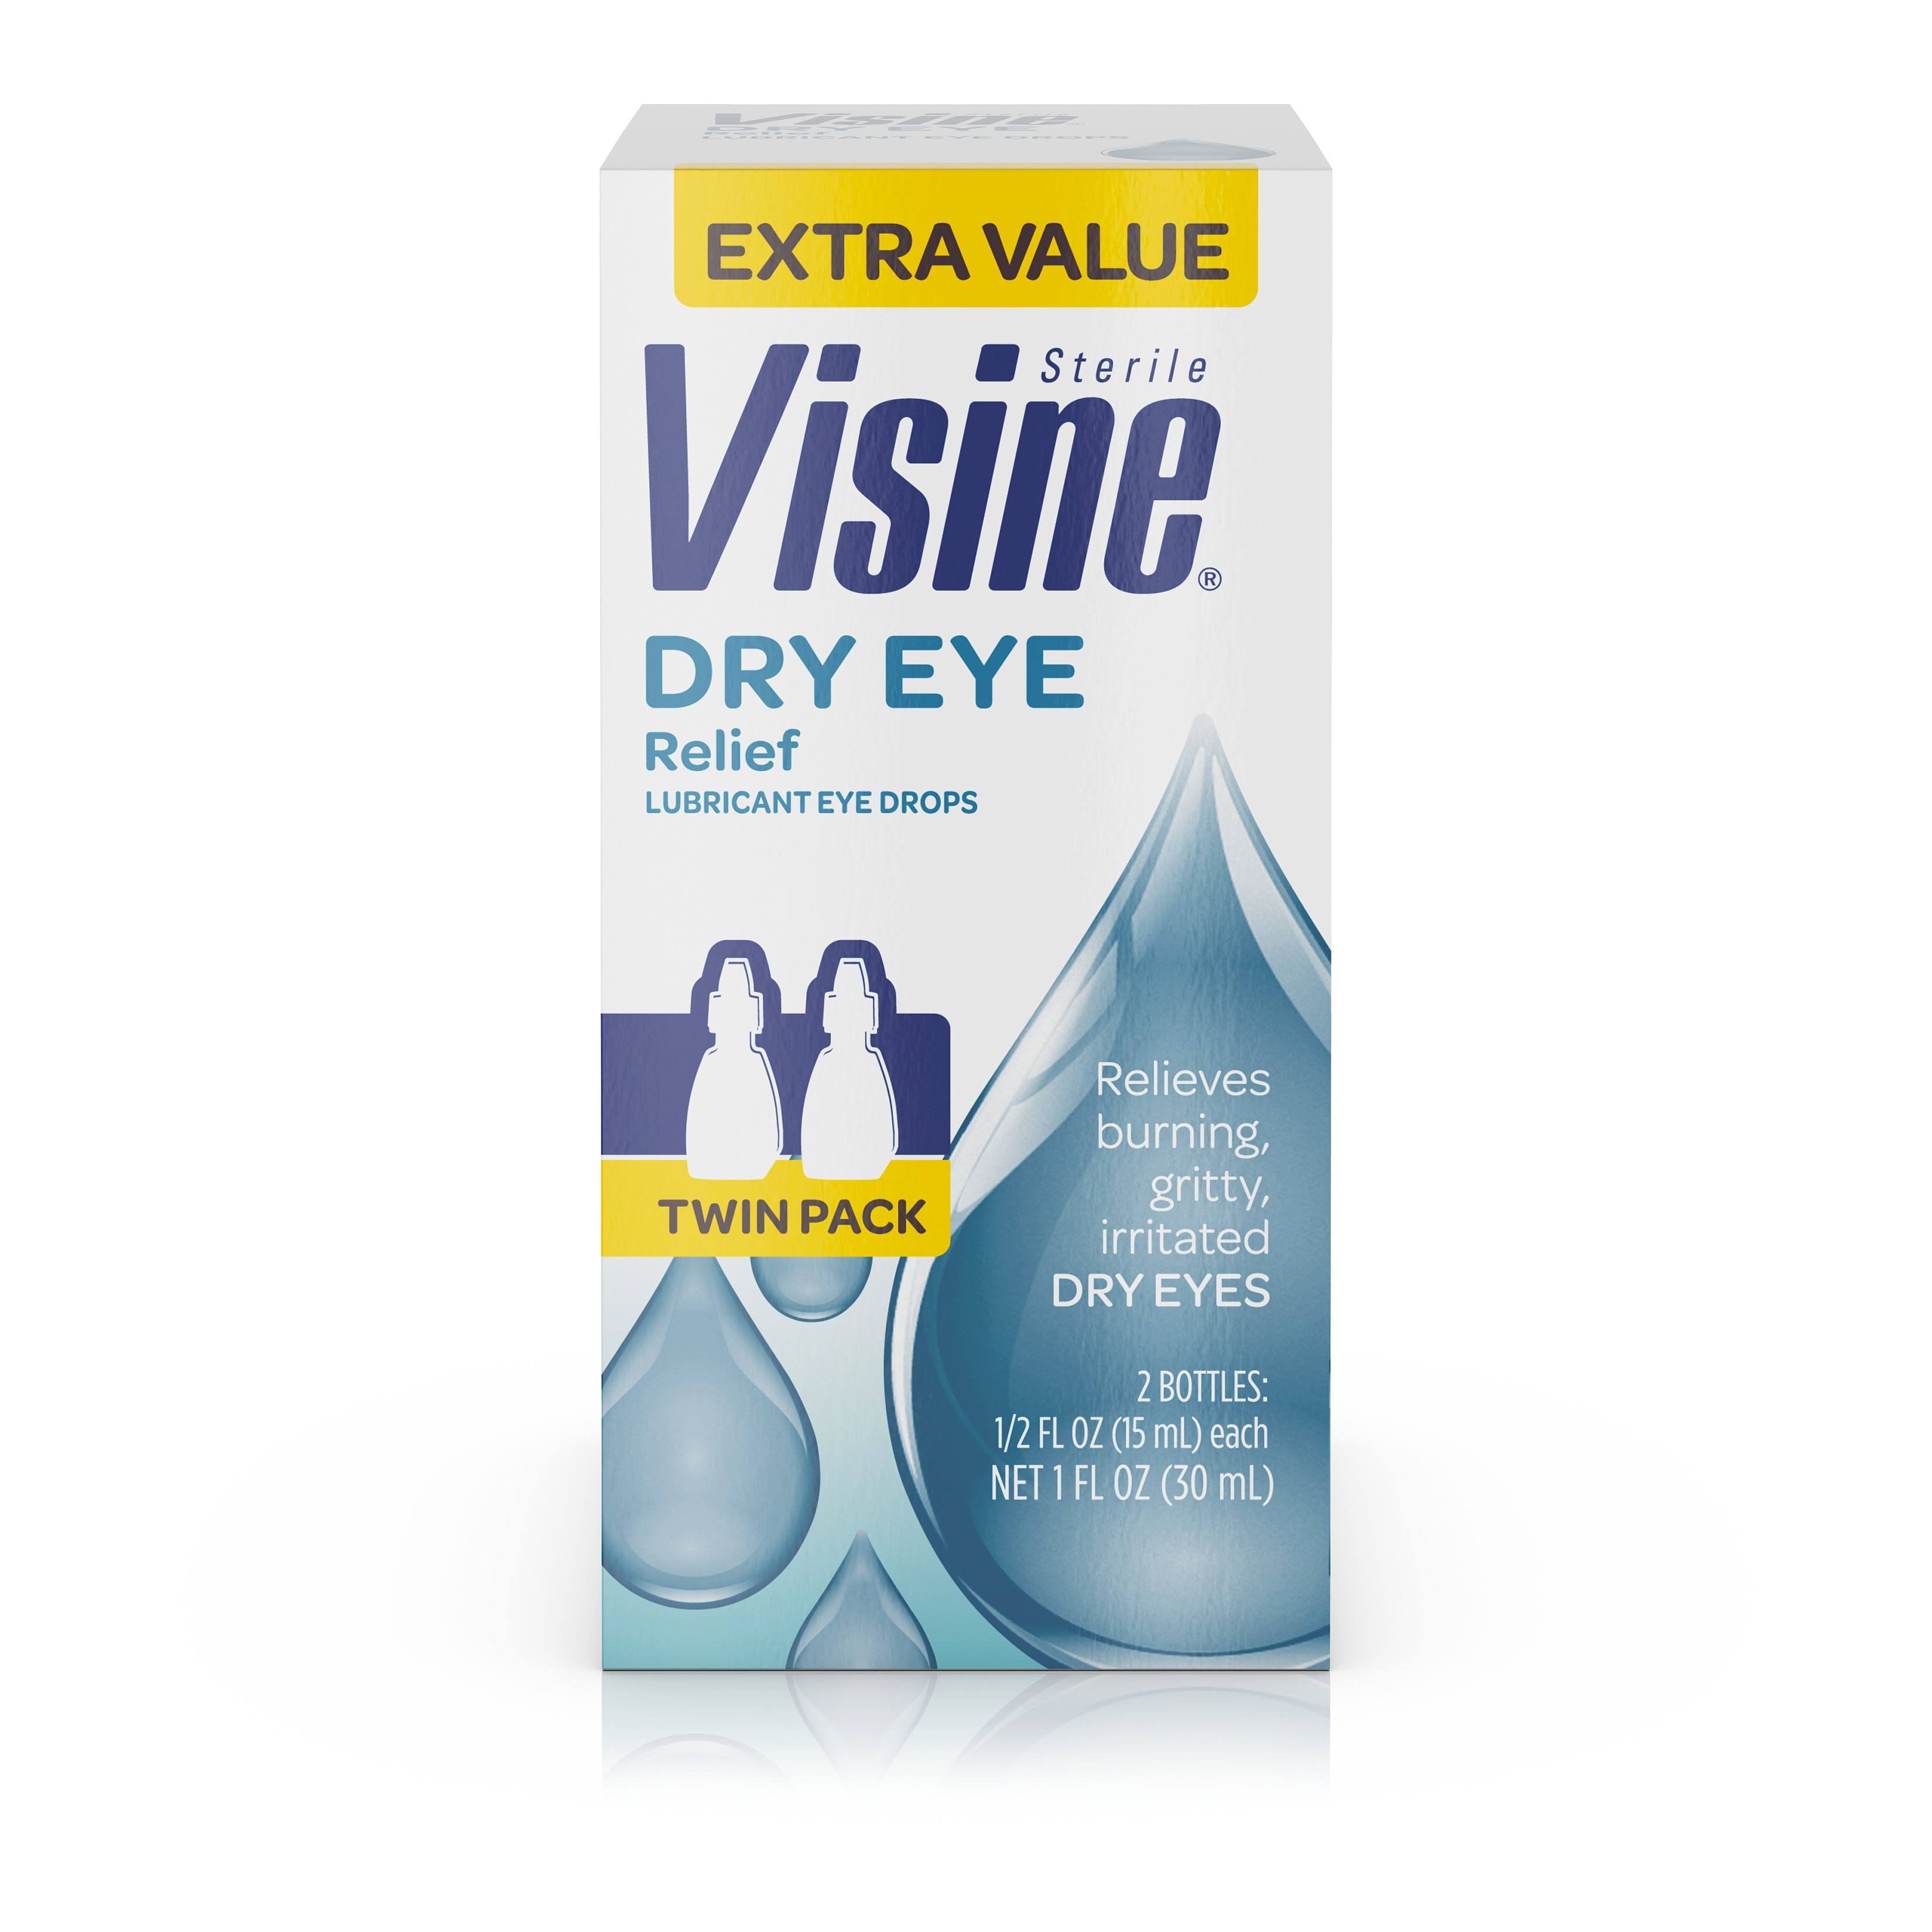 Visine Tears Dry Eye Relief Lubricant Eye Drops - 0.5oz, Pack Of 2